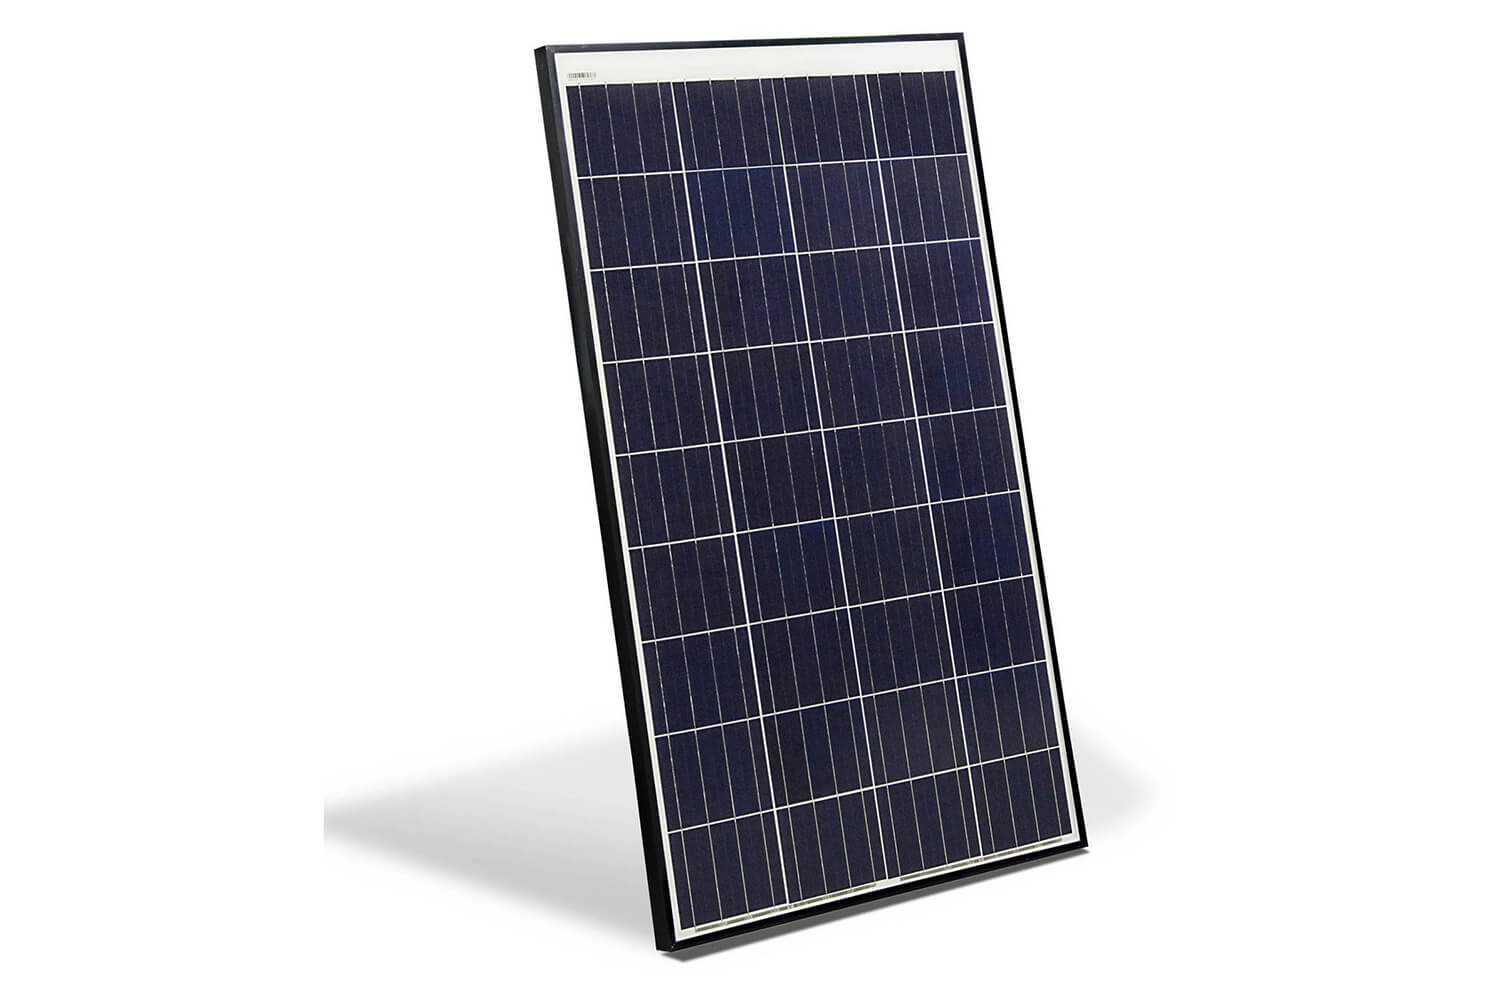 Aleko Etl Polycrystalline Modules Solar Panel 250w 12v